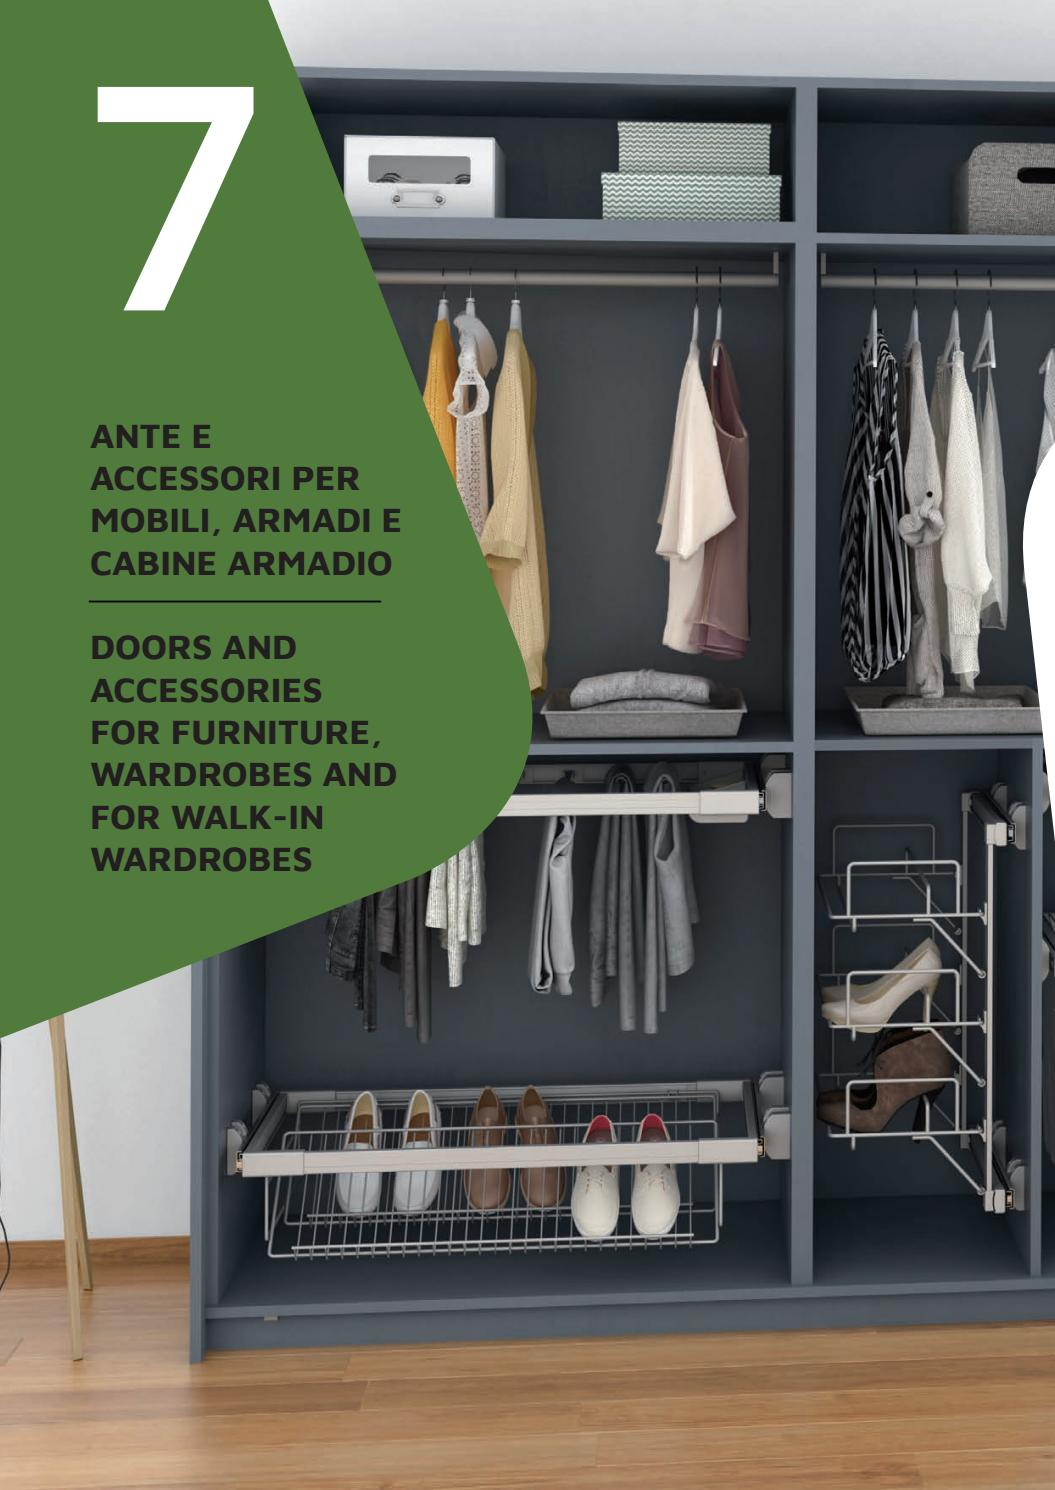 Accessori Per Armadi Guardaroba.Accessori Per Armadi E Cabine Armadio Accessories For Wardrobes And For Walk In Wardrobes By Emuca Issuu